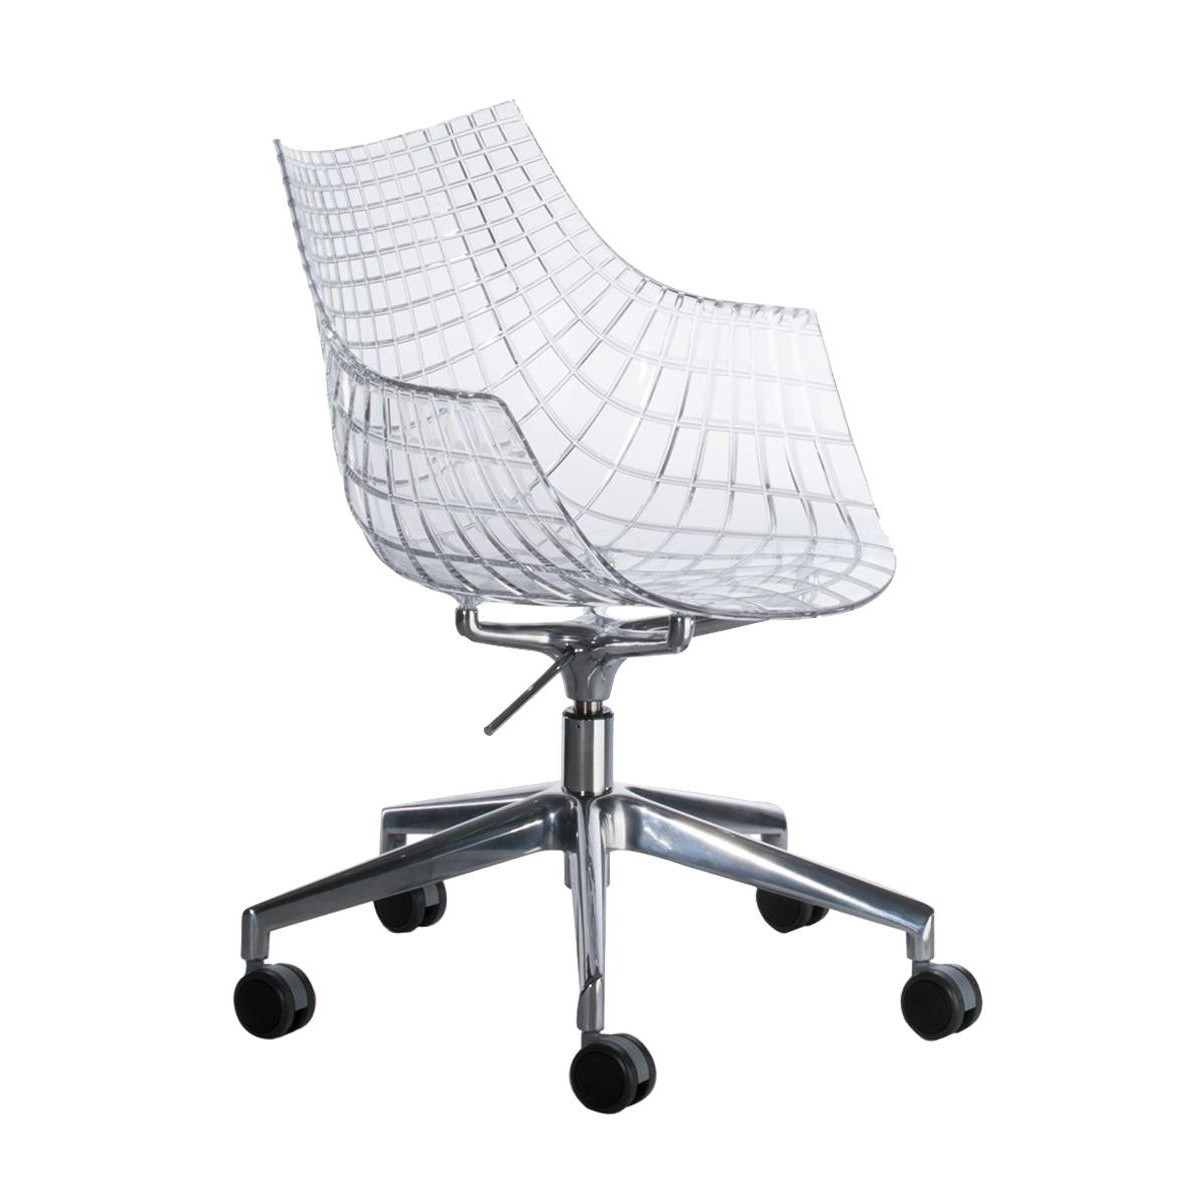 Chair With Wheels >> Meridiana Swivel Chair With Wheels